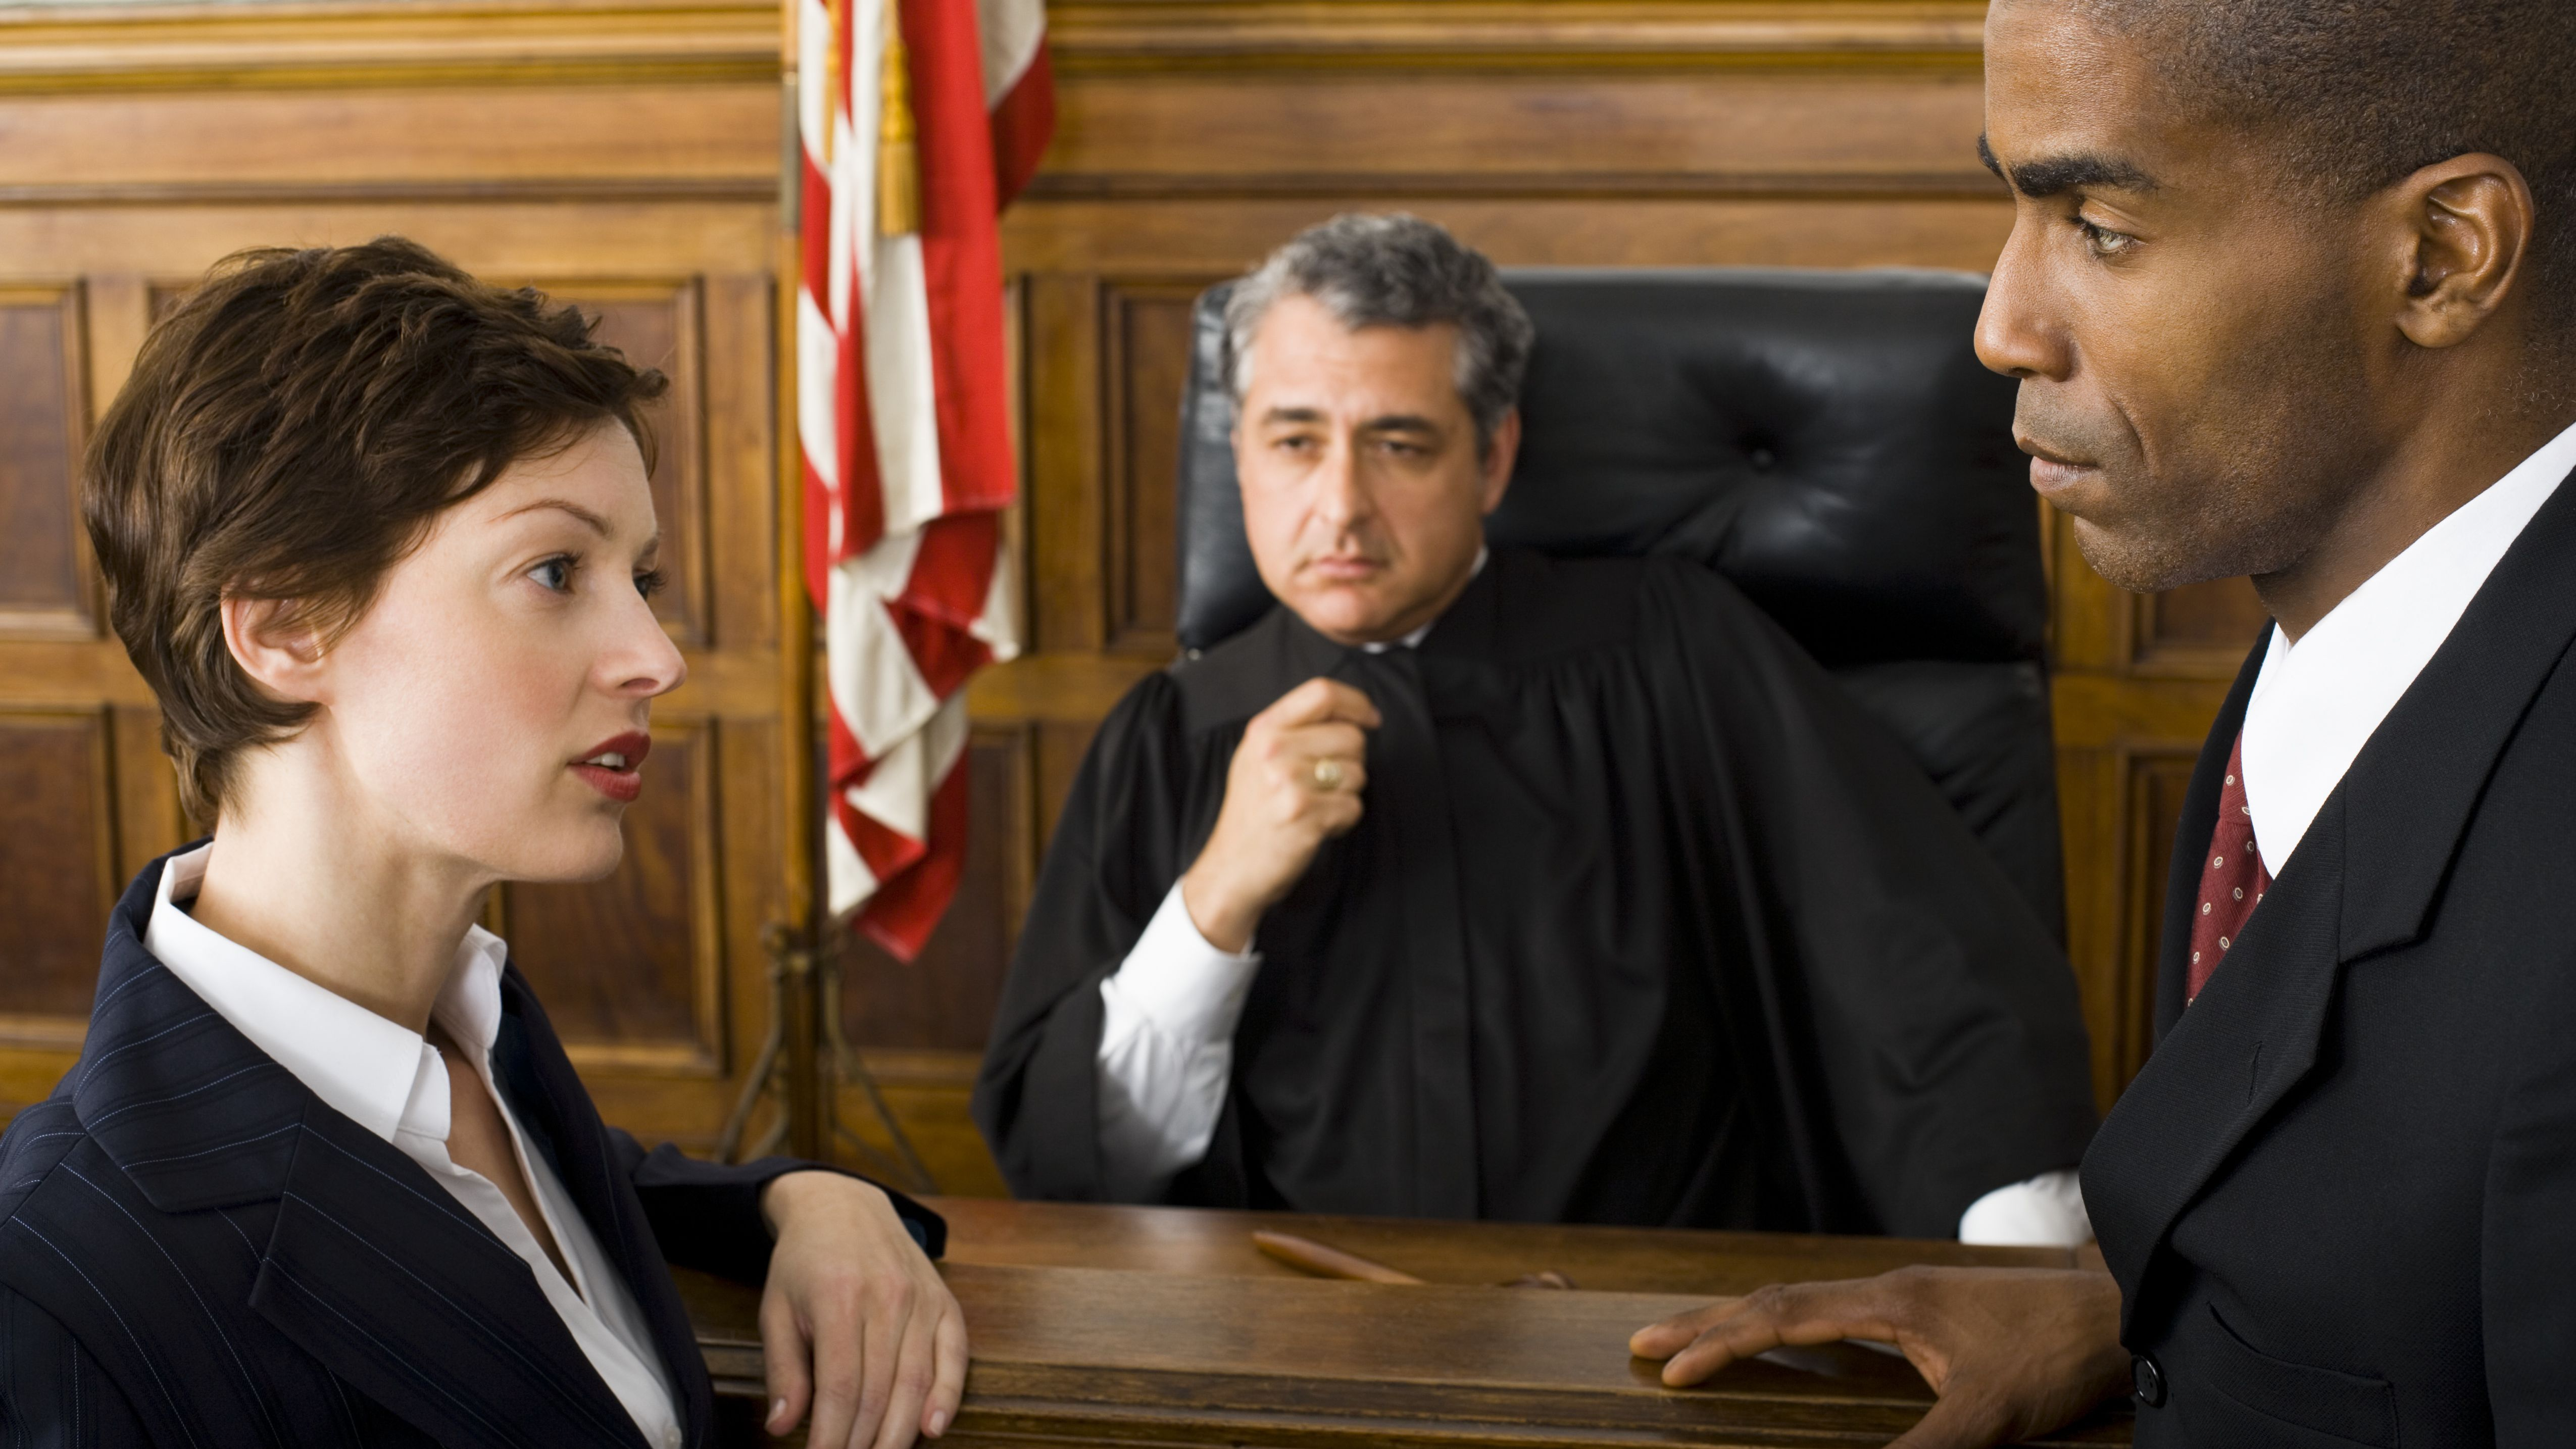 How to Sue Someone in a Business Dispute